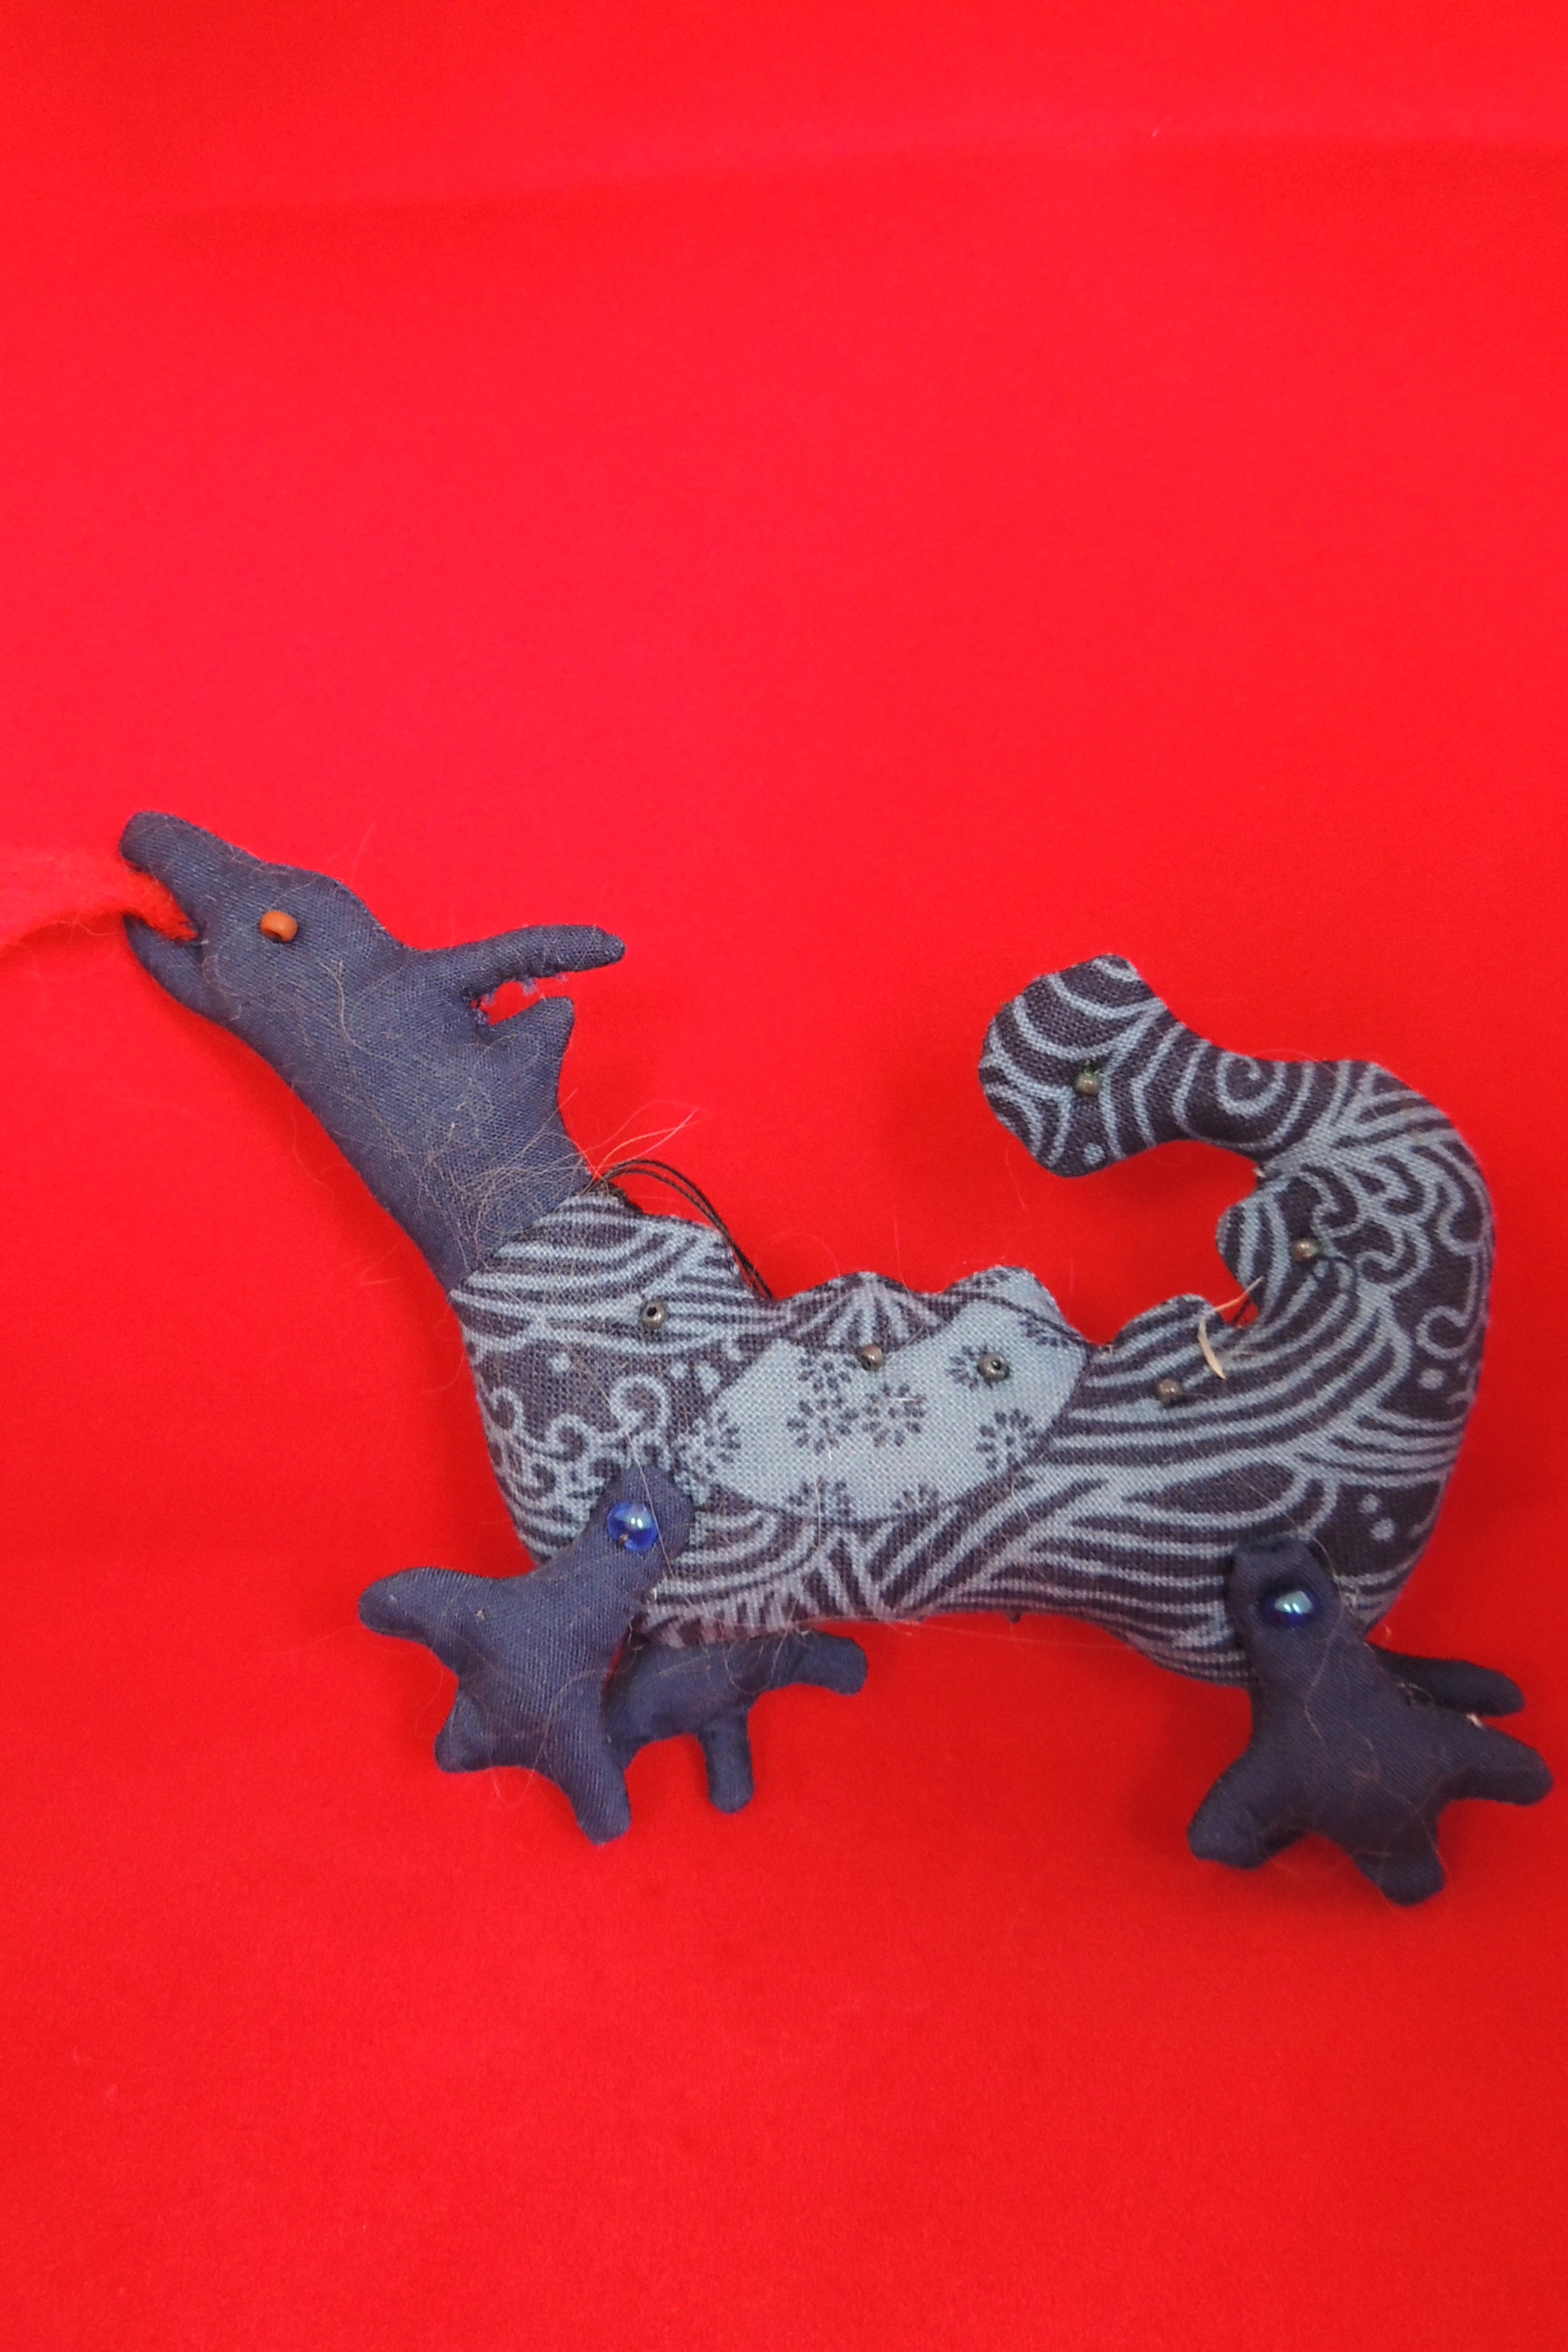 Ornament – Year of the Dragon